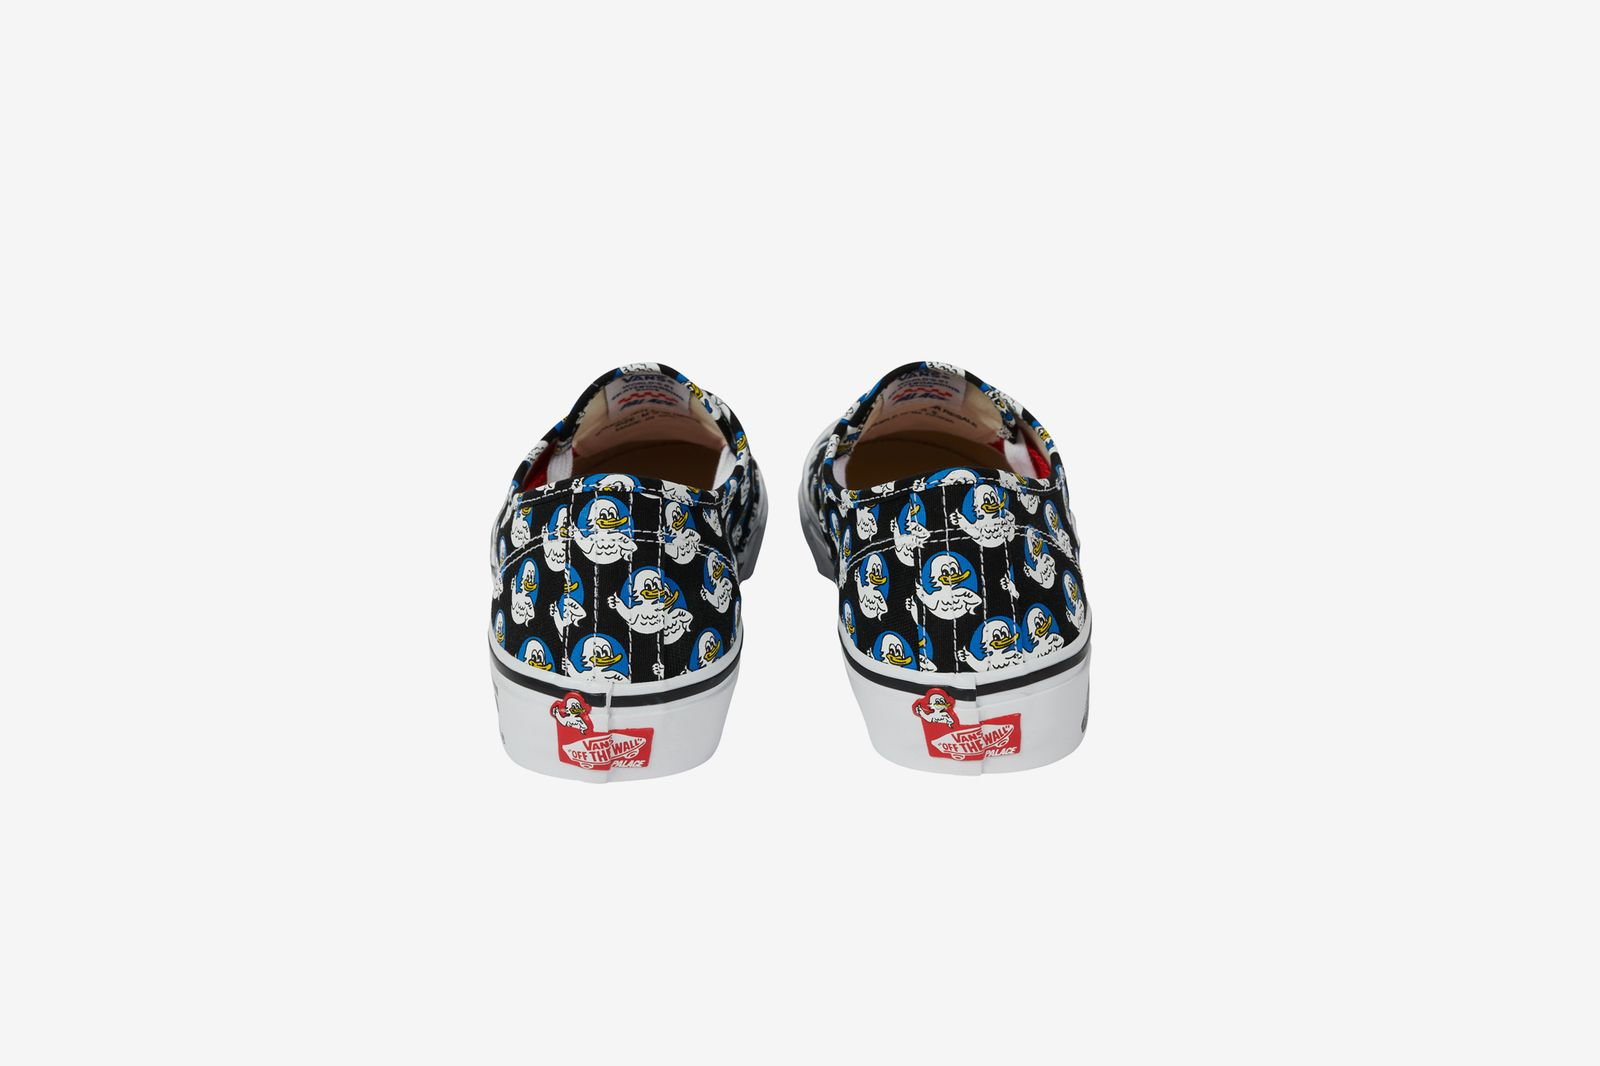 palace-vans-skate-authentic-release-date-price-1-06